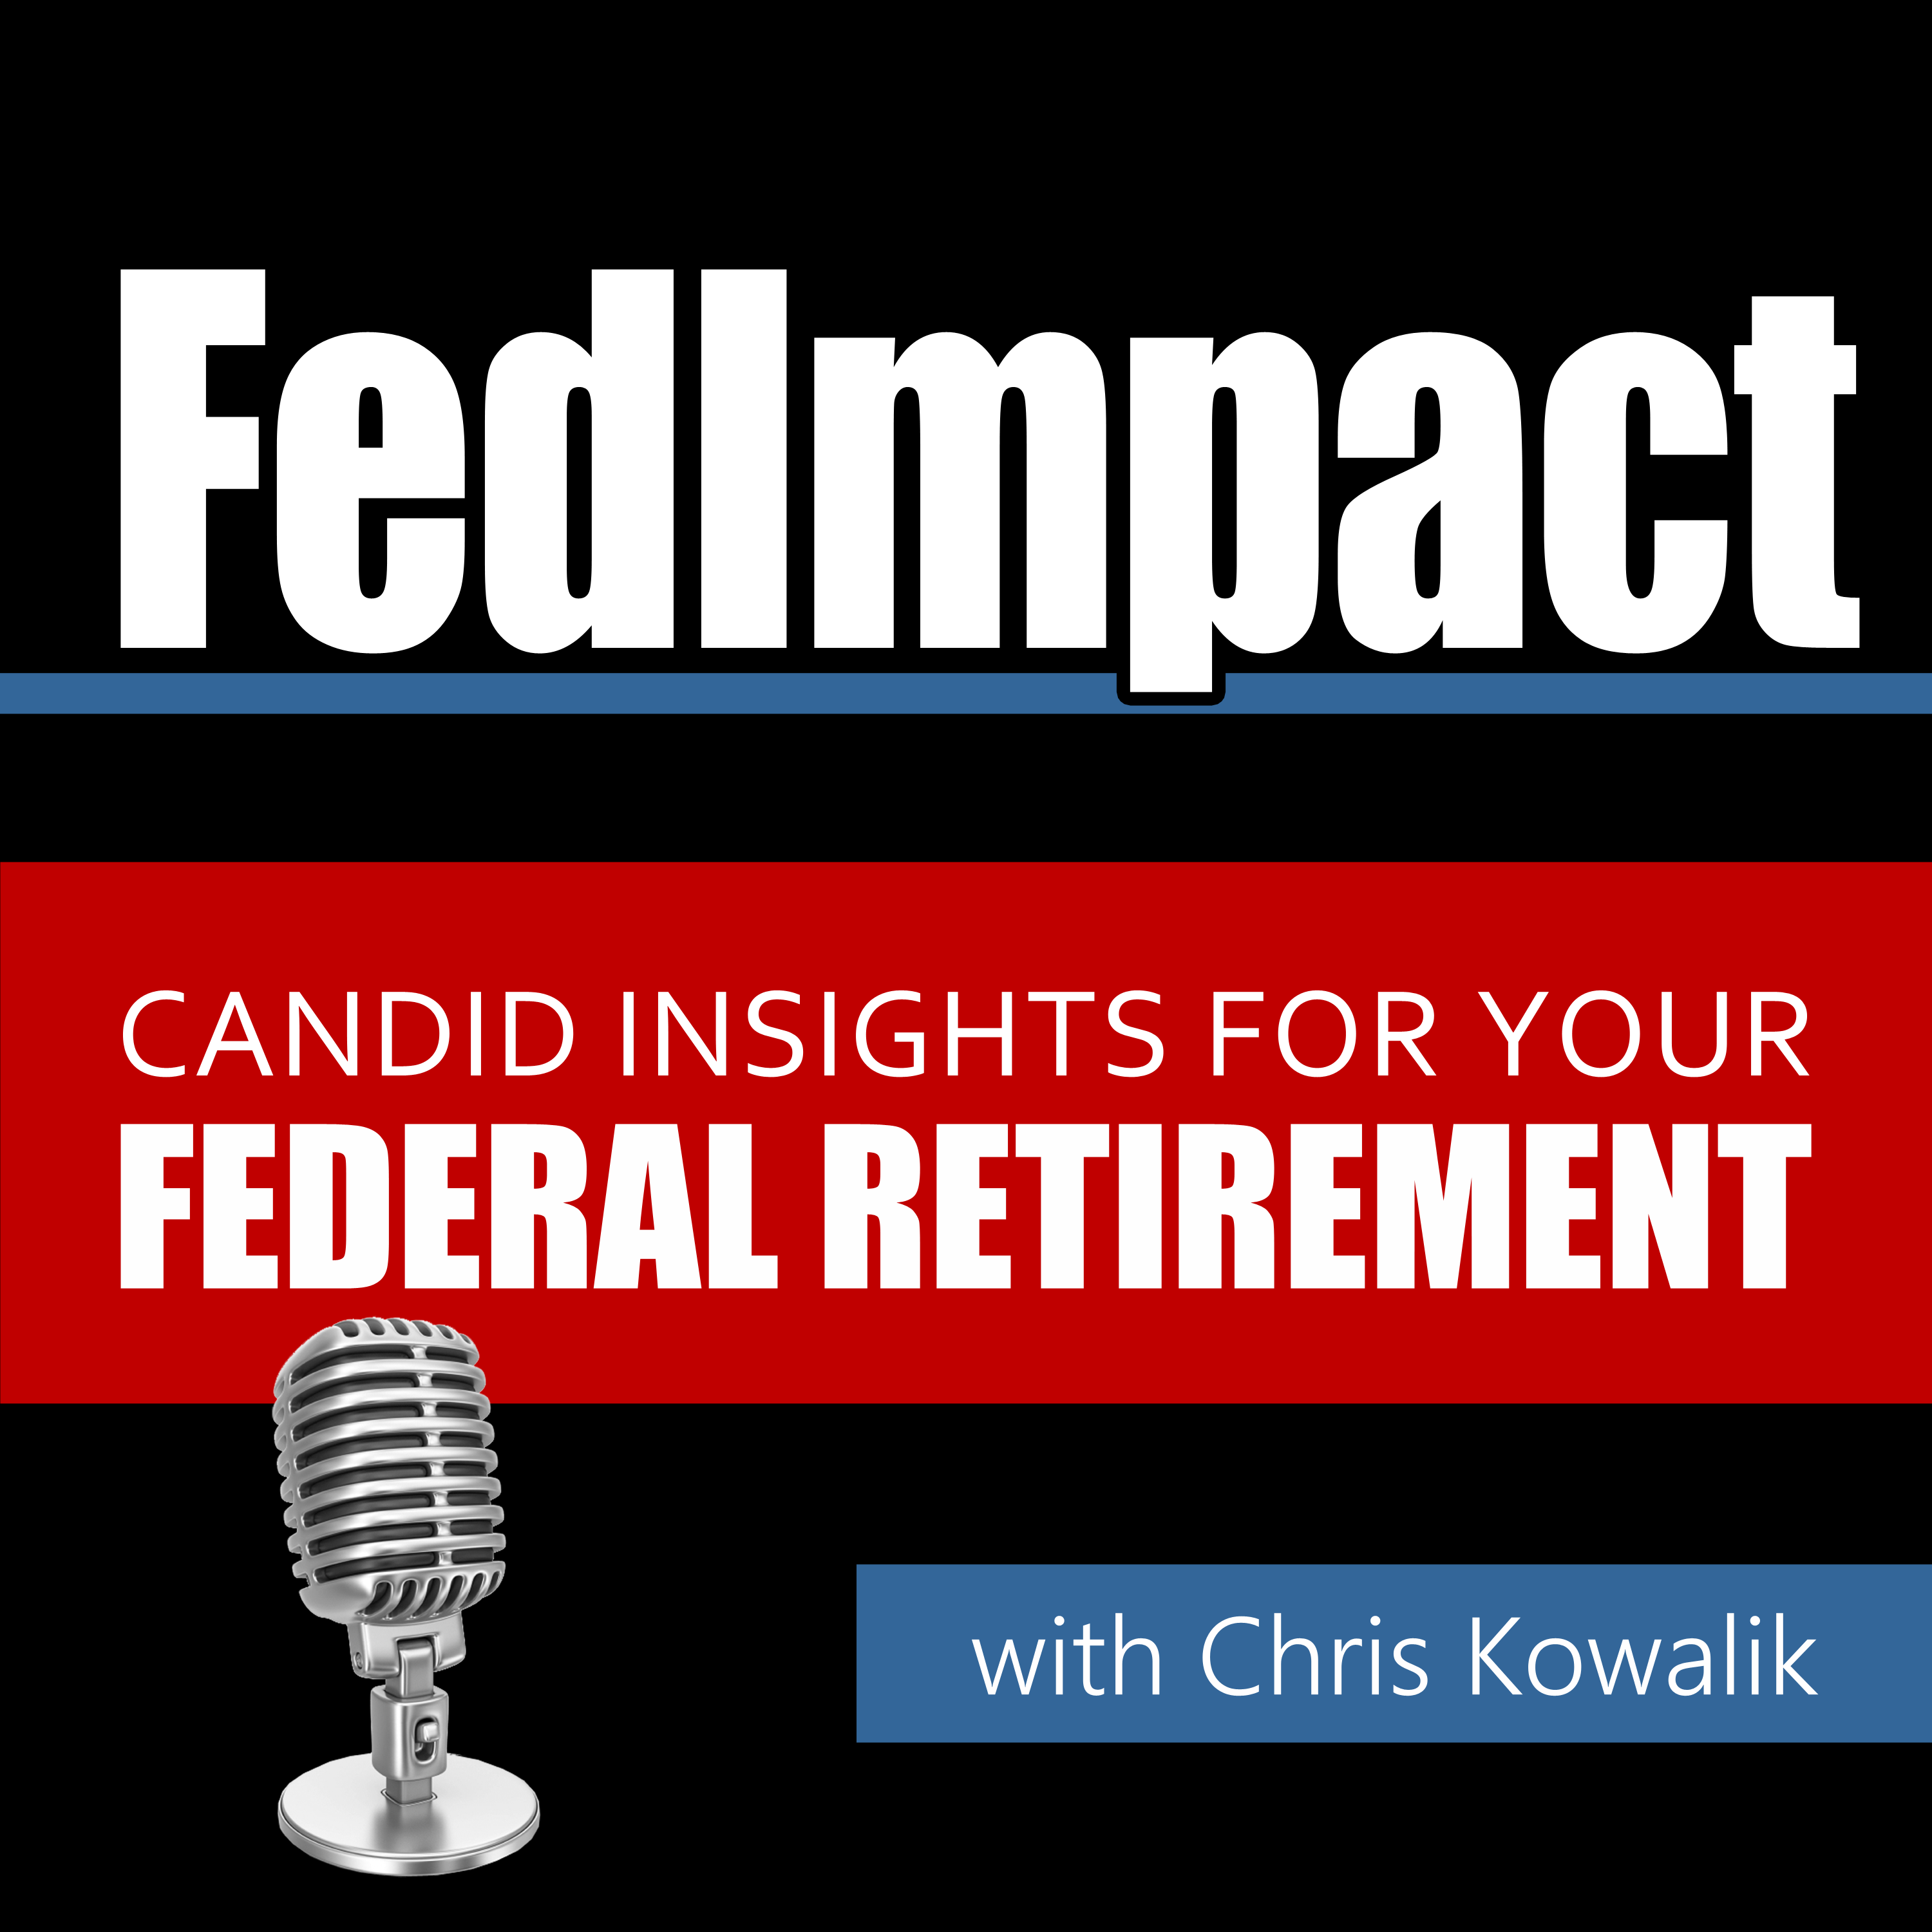 FedImpact: Candid Insights for Your Federal Retirement logo